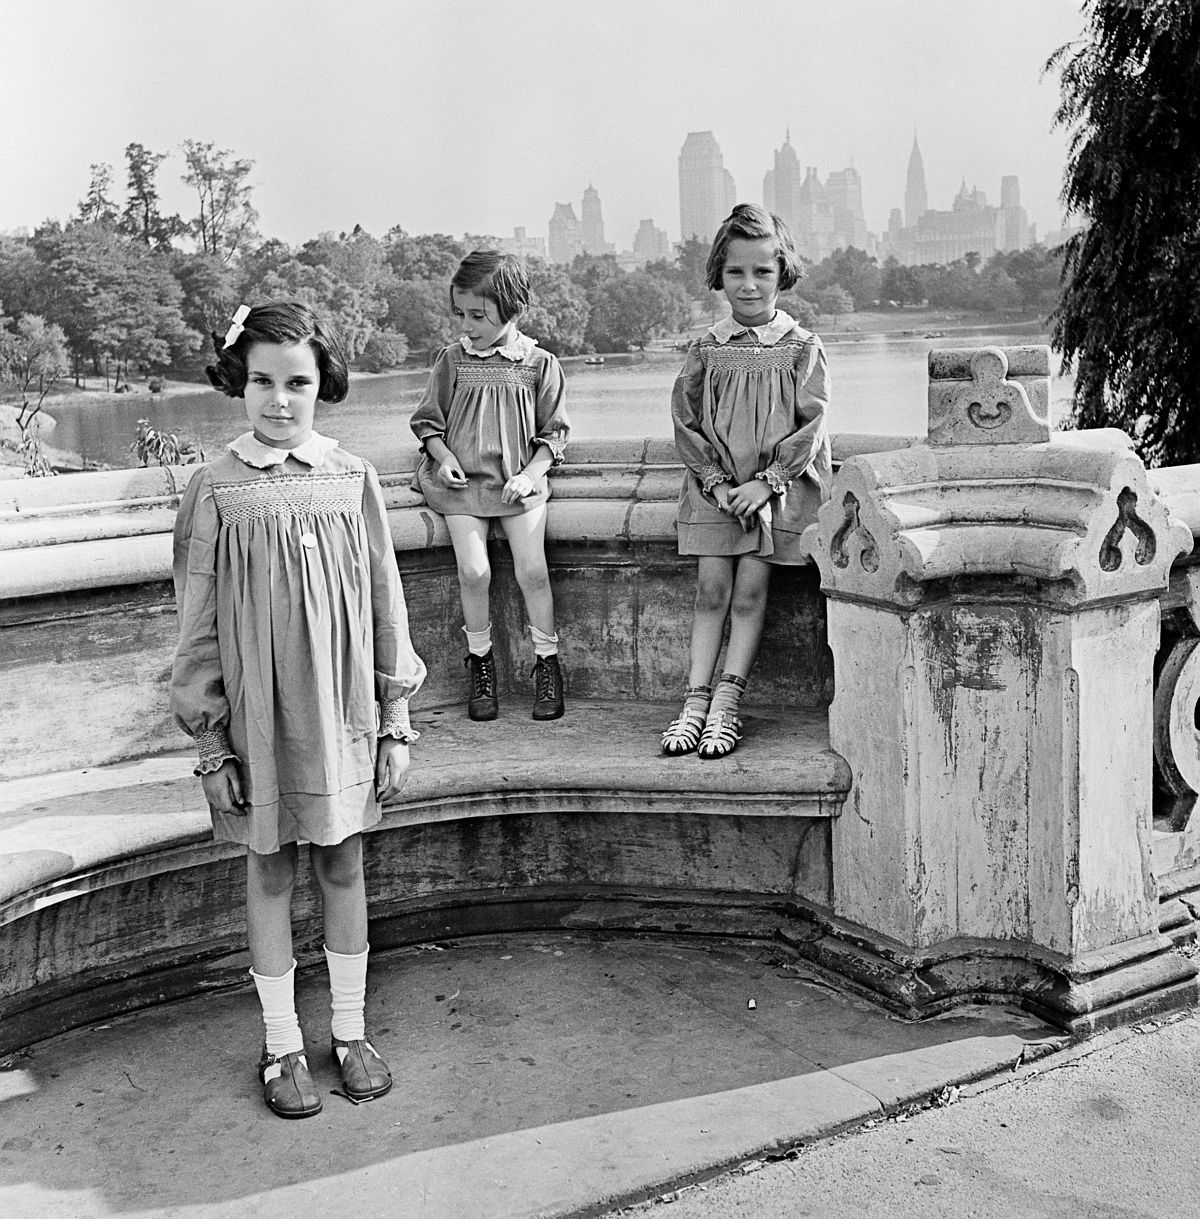 Roman Vishniac, [Sisters Marion, Renate, and Karen Gumprecht, refugees assisted by the National Refugee Service (NRS) and Hebrew Immigrant Aid Society (HIAS), shortly after their arrival in the United States, Central Park, New York], 1941. Ink-jet print. © Mara Vishniac Kohn, courtesy International Center of Photography.